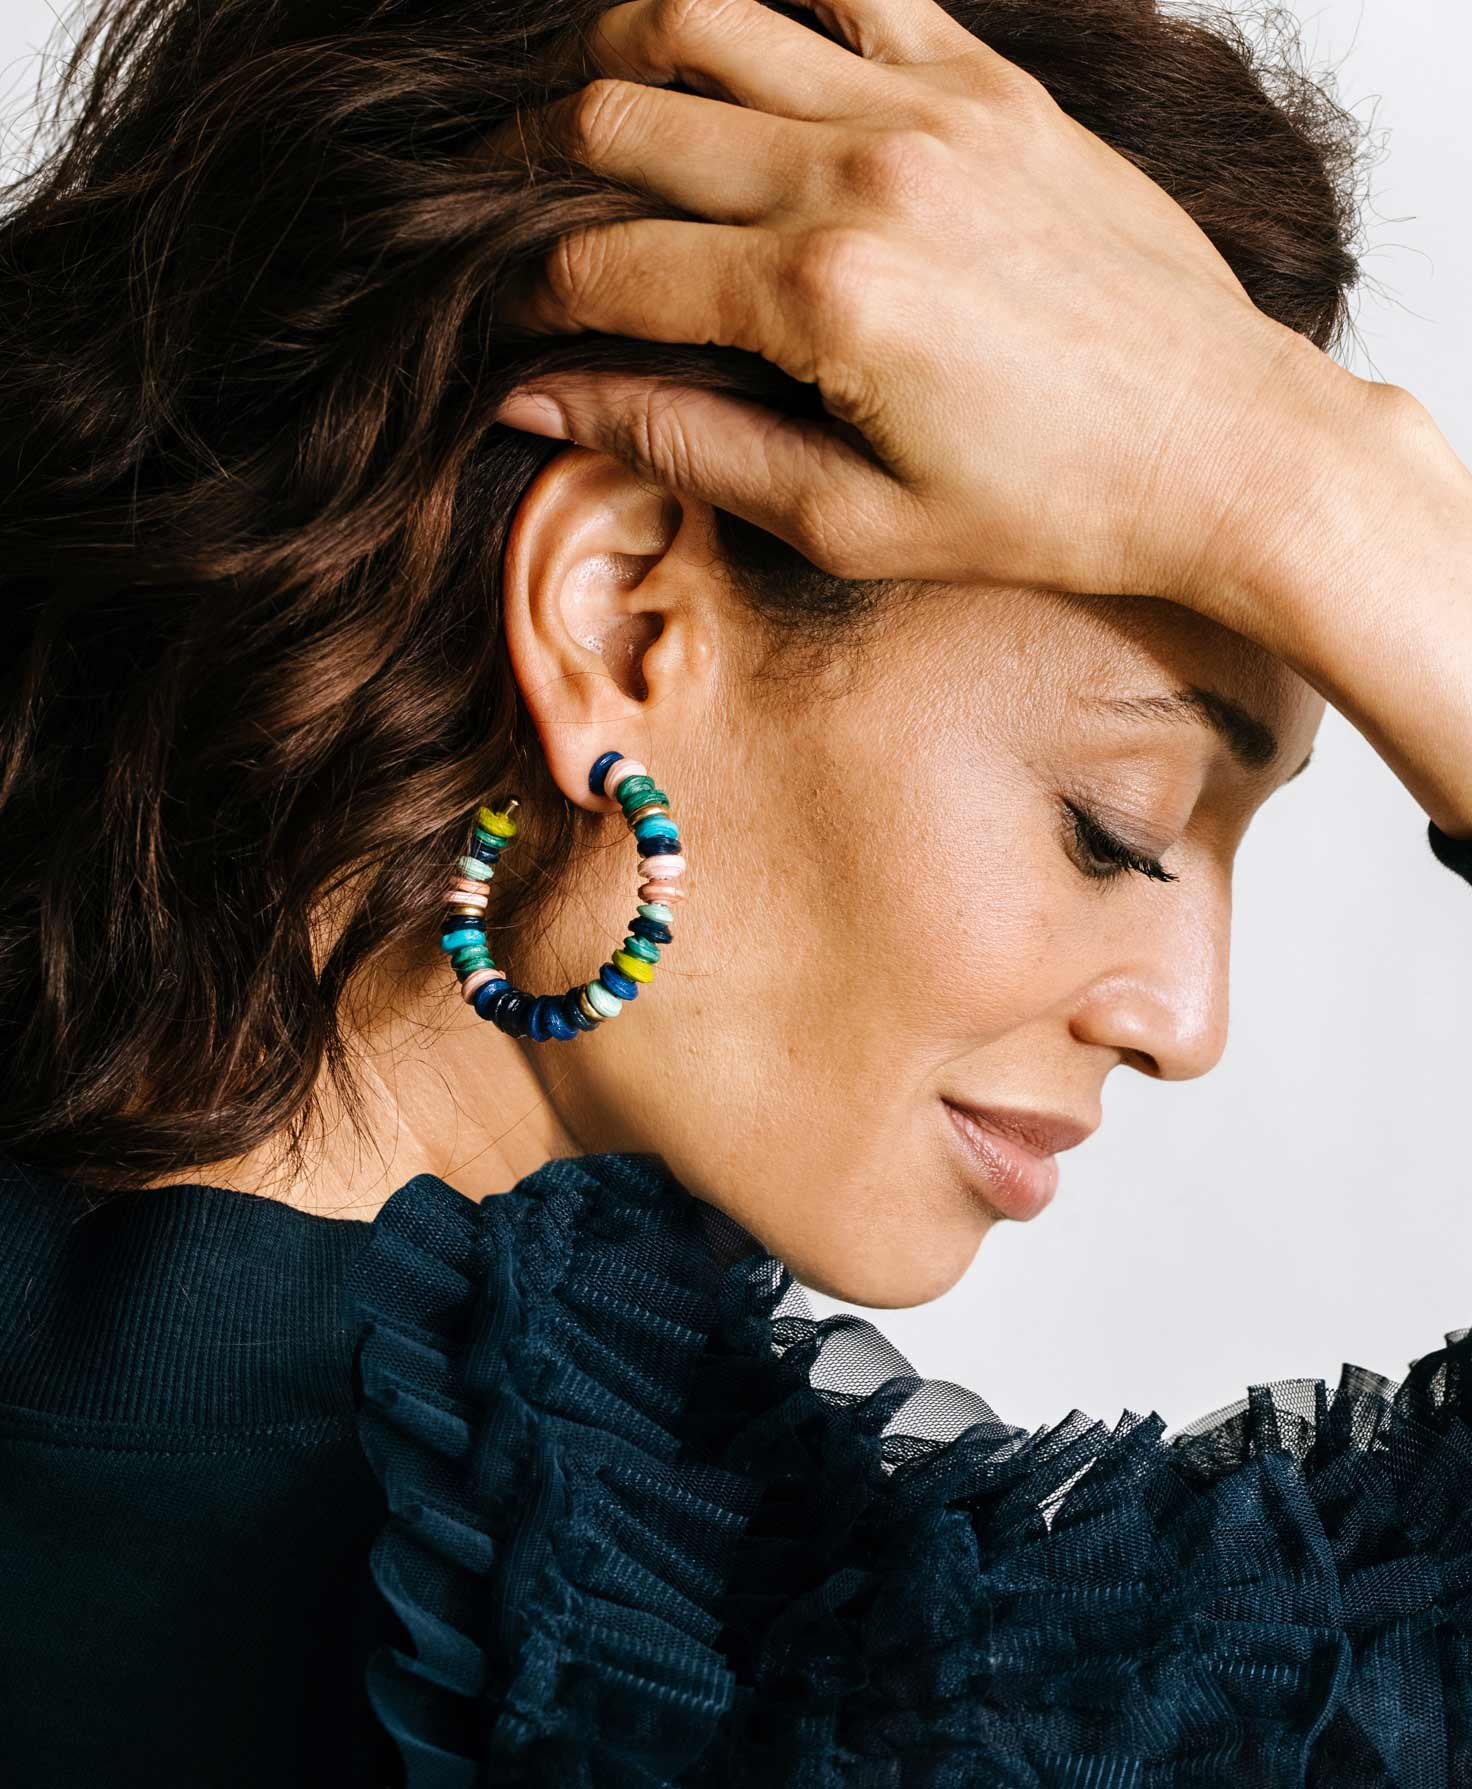 A model wears the colorful Venture Hoops. She pairs them with a deep teal blouse that plays off the oceanic colors in the earrings.